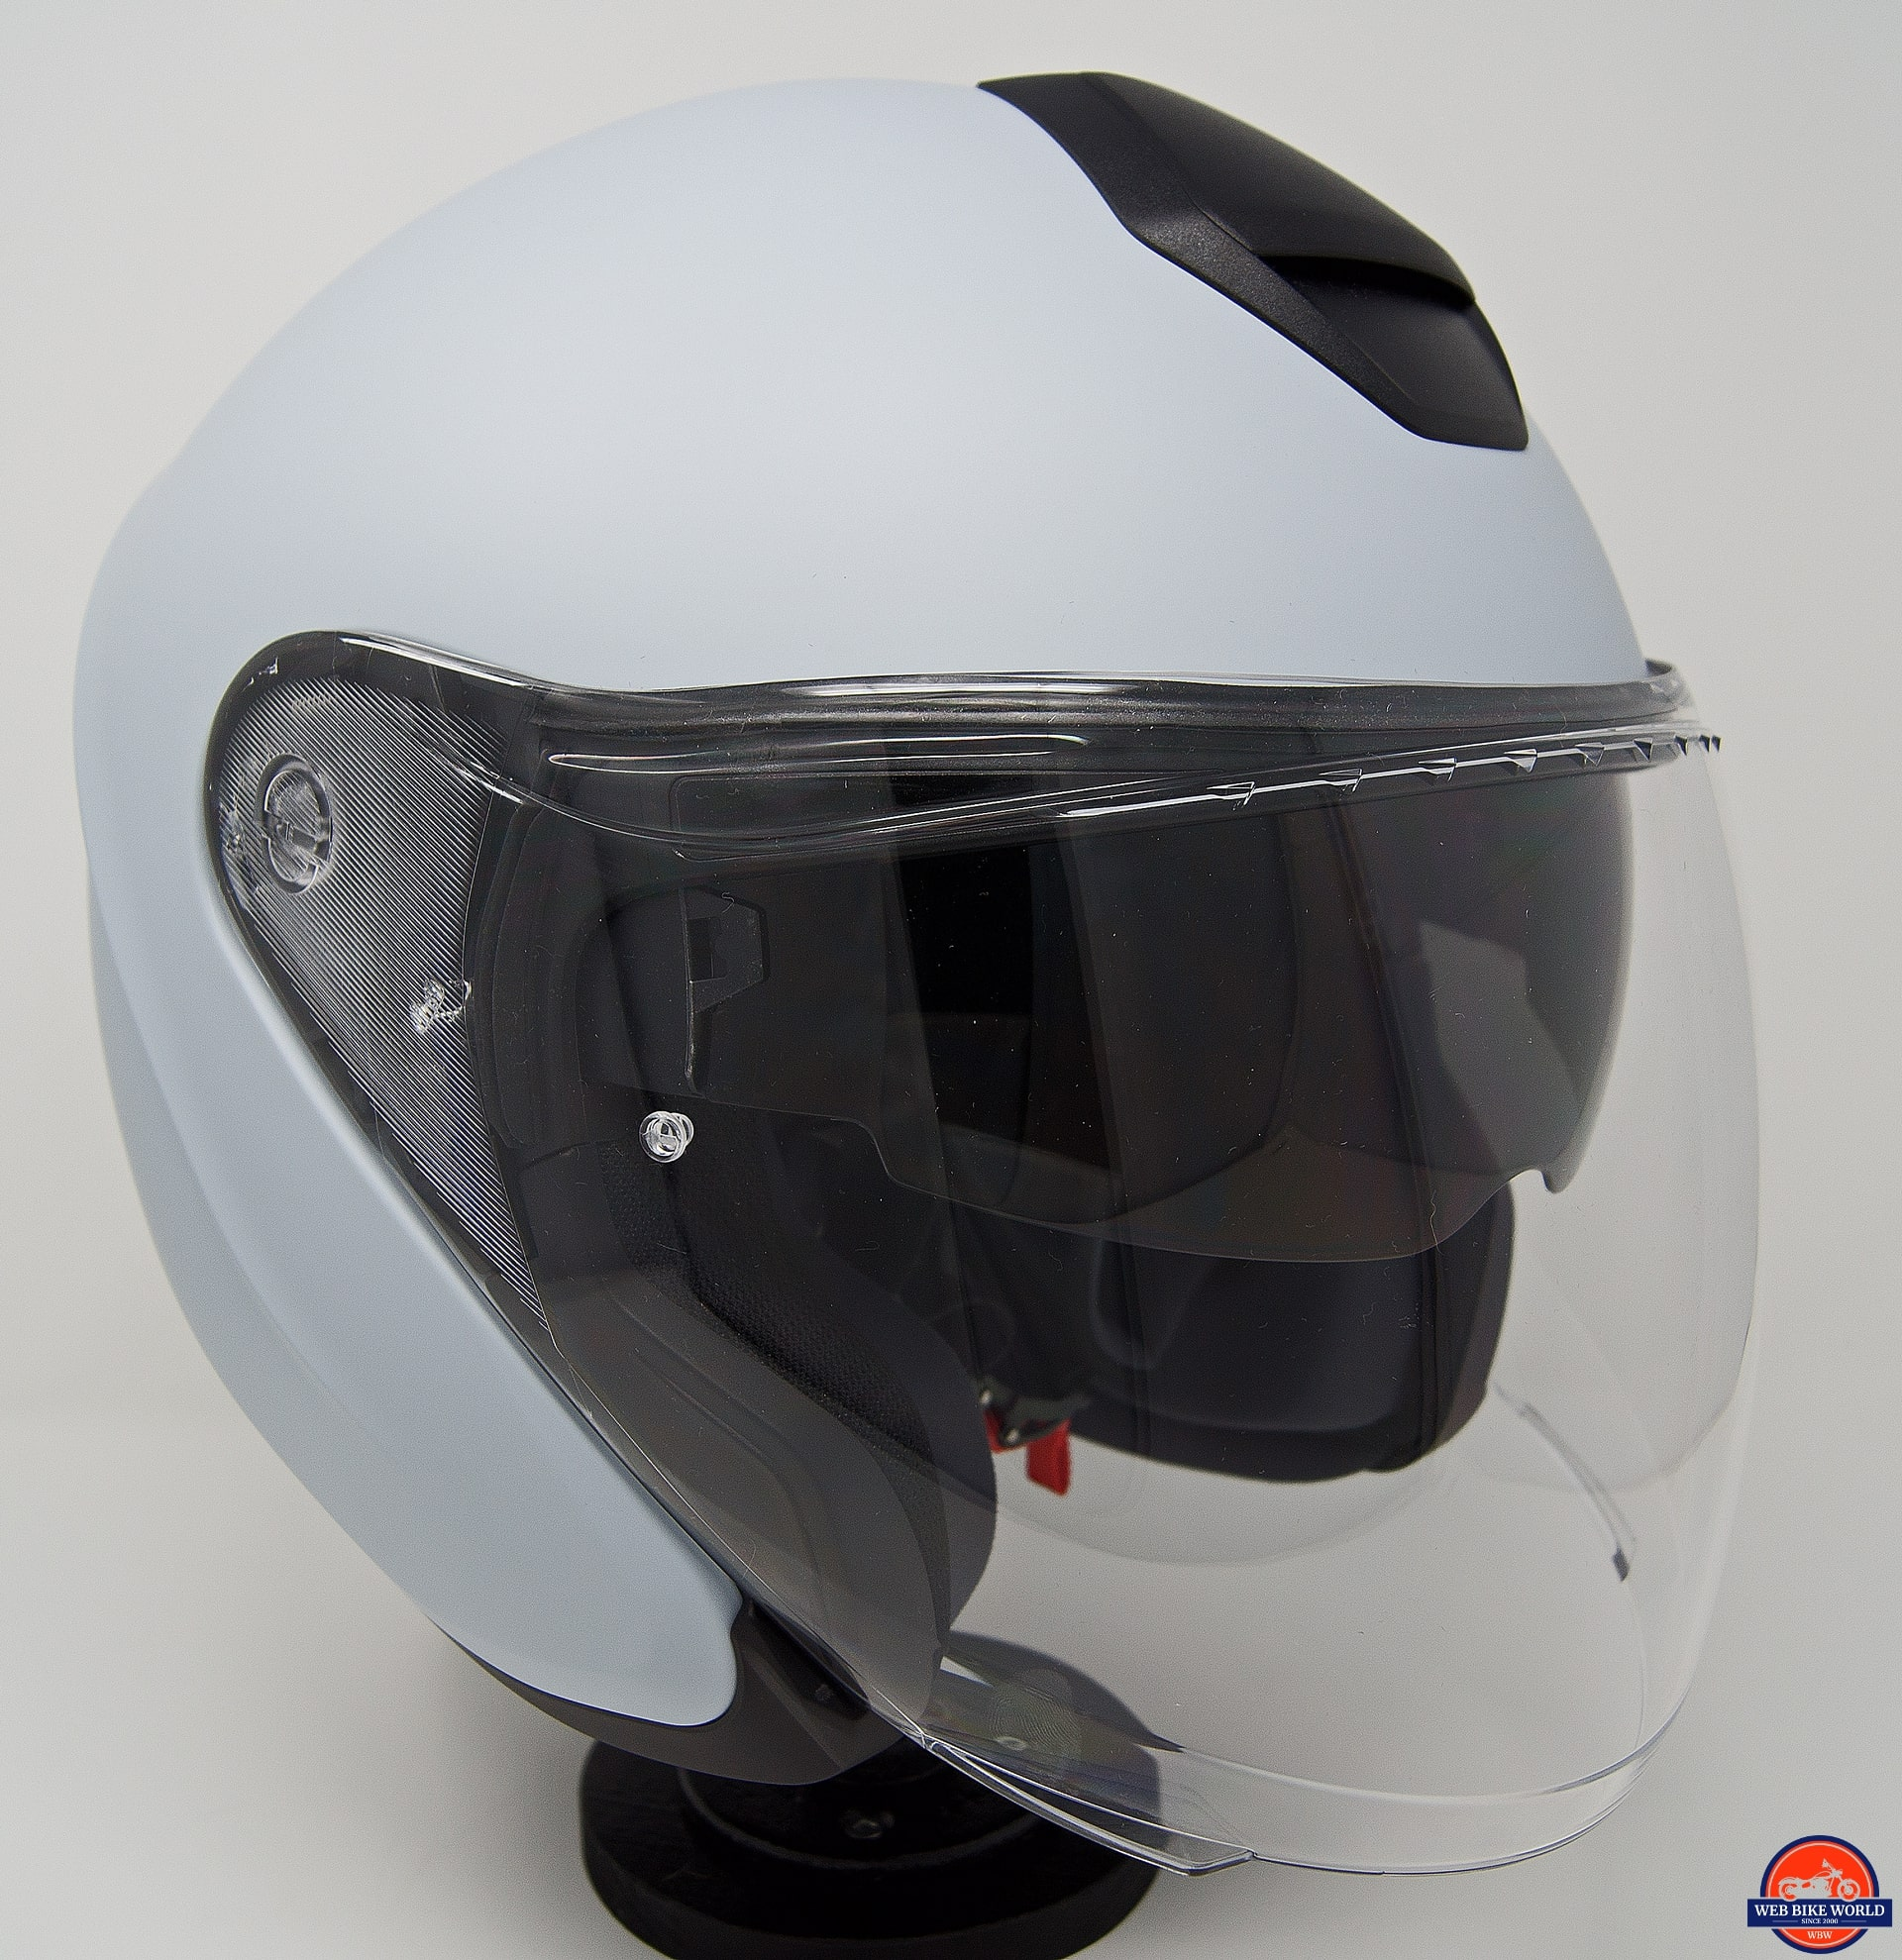 SCHUBERTH M1 Pro and Sena SC1M